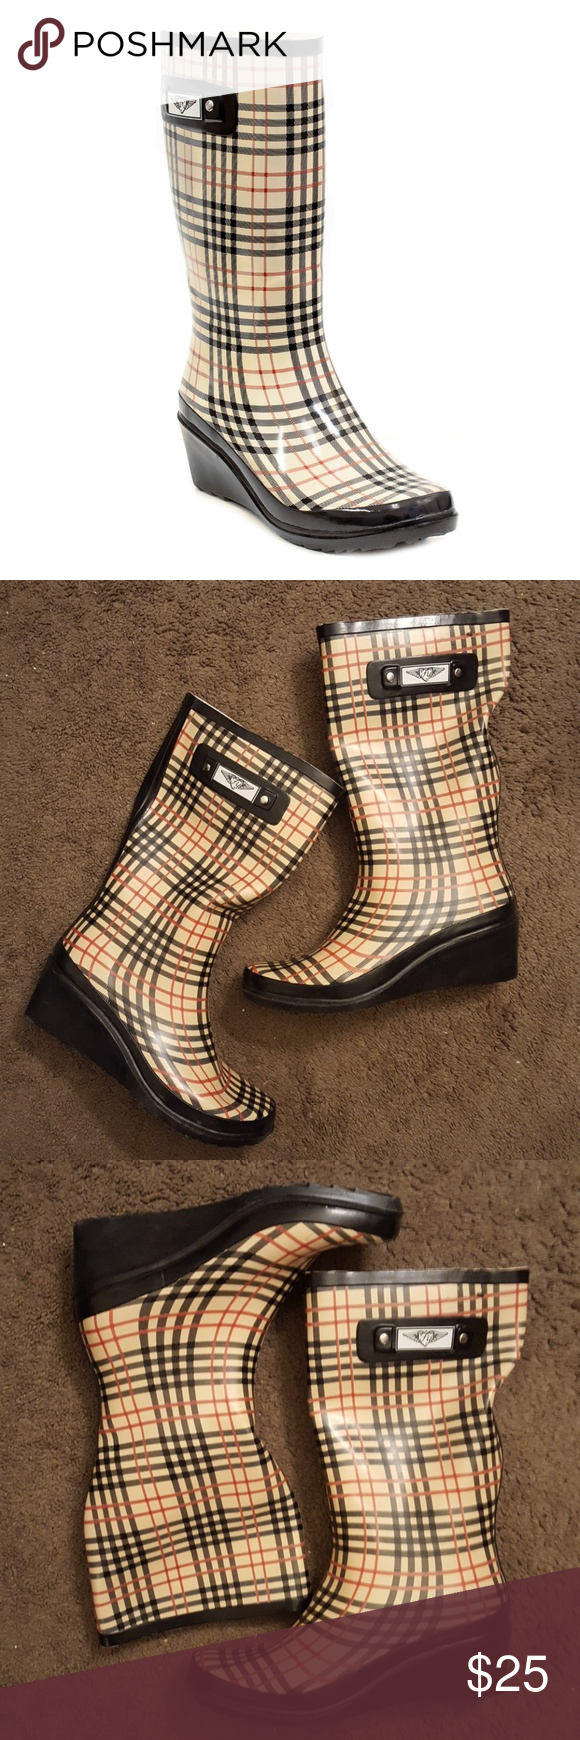 Forever Young Checkered Wedge Rain Boots Size 11 Forever Young Checkered Wedge Rain Boots Size 11. Gently worn once, like new condition. Perfect rain boots with your favorite leggings and boot socks. Glossy & colorful rubber galoshes, easy to clean exterior, soft cotton / polyester lining. Sturdy ribbed rubber sole with a 1.5. Comes with original bag. Forever Young Shoes Winter & Rain Boots